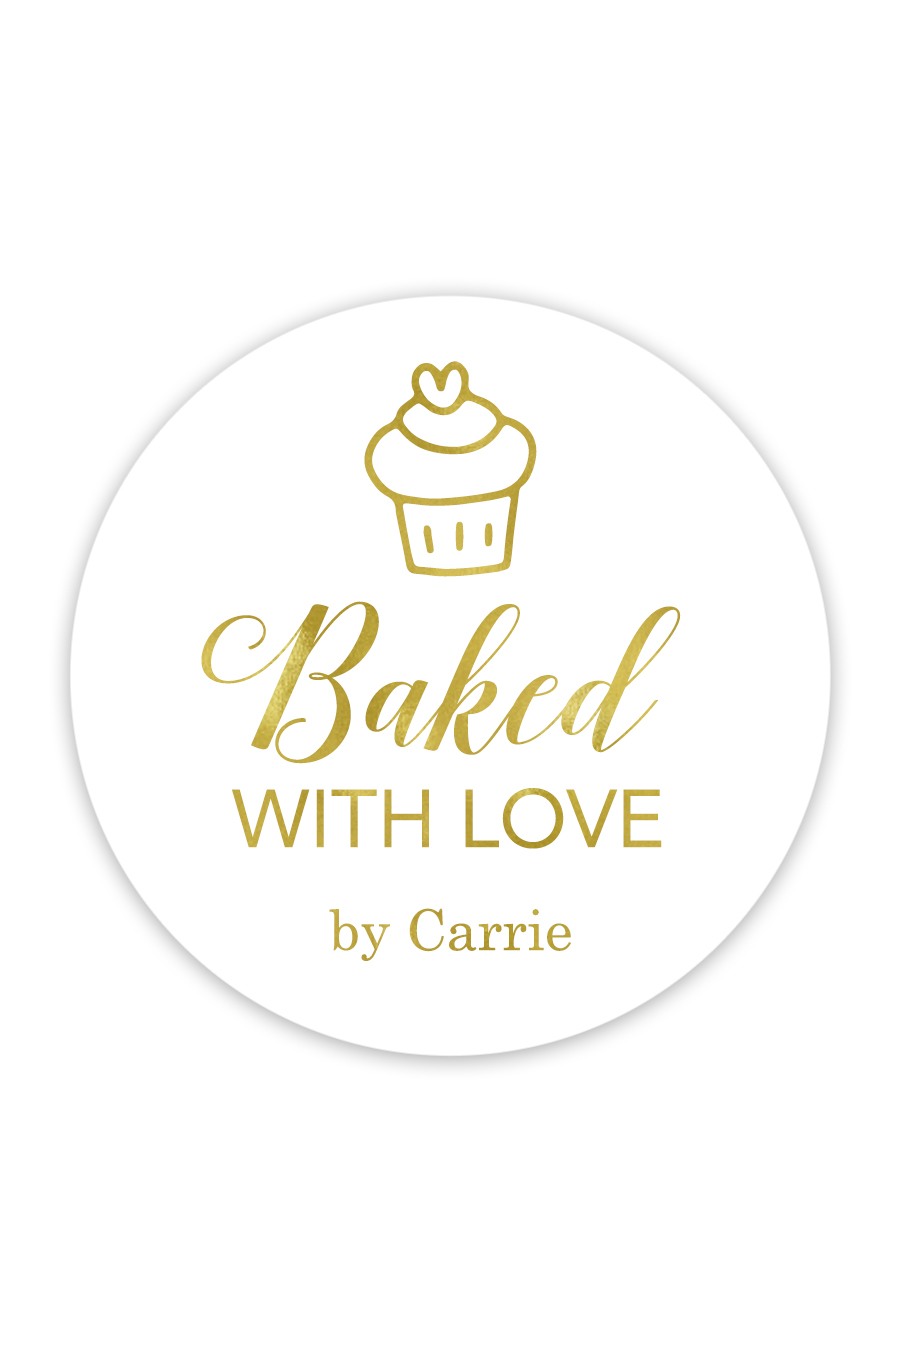 Download Baked With Love Cupcake Favor Stickers (Circle) - Chicfetti